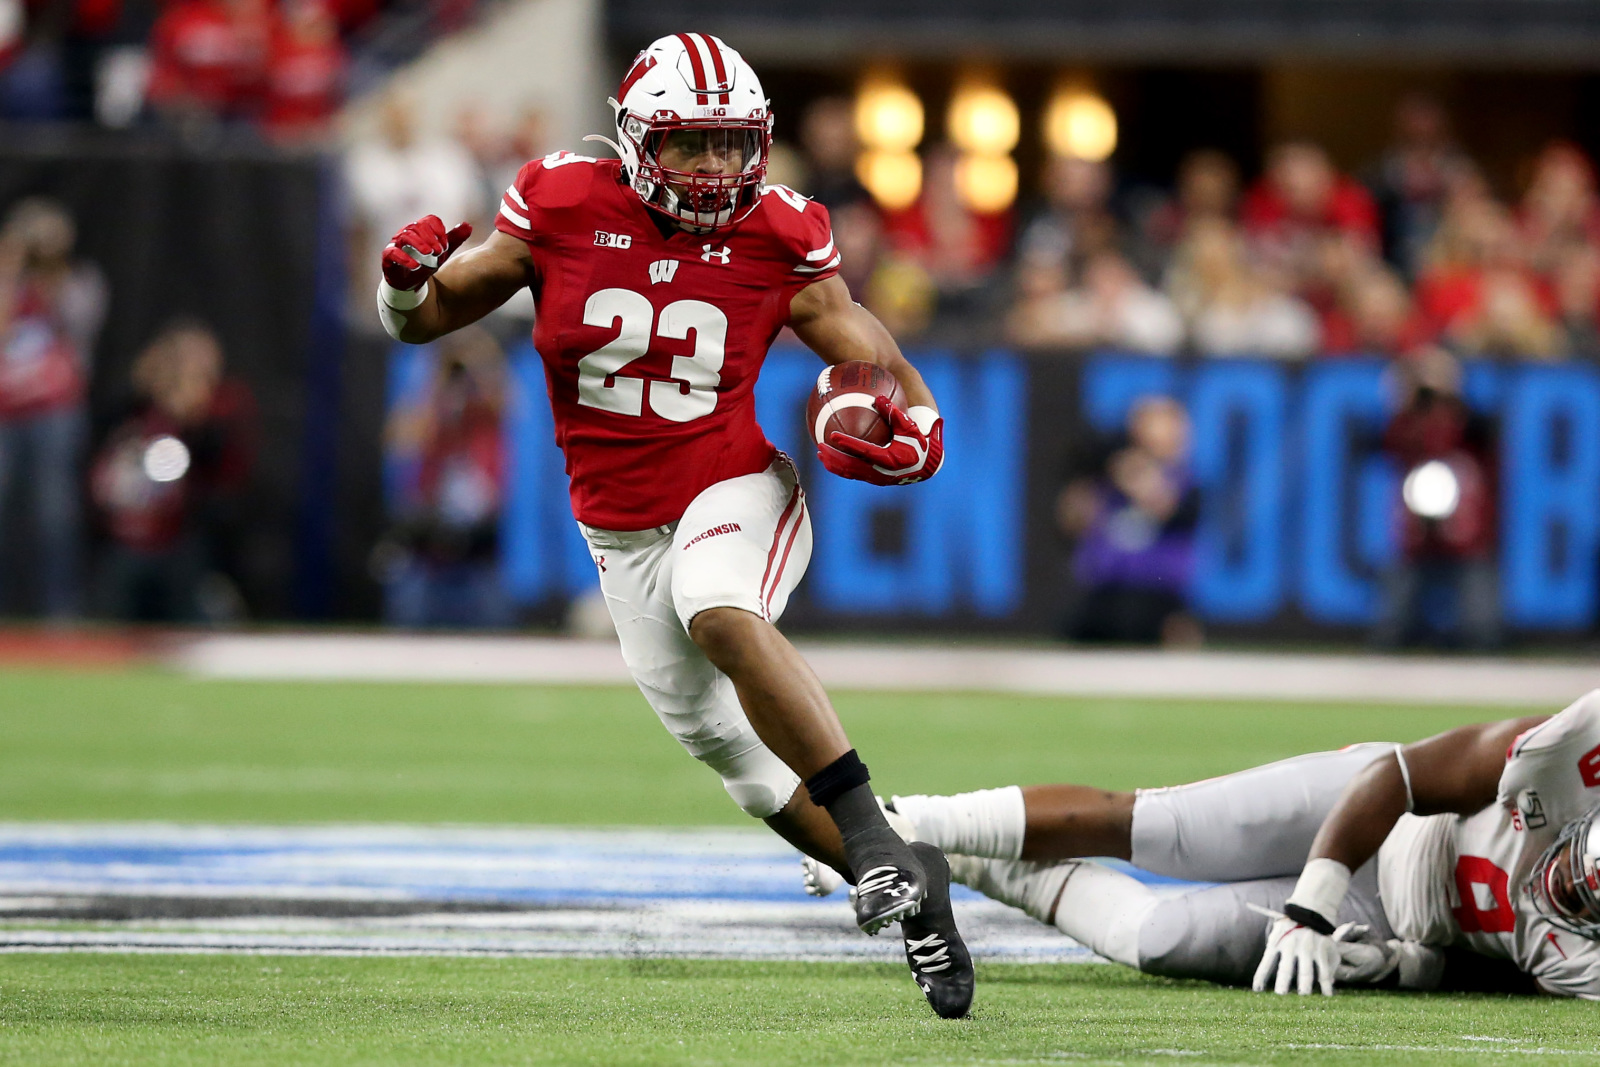 Wisconsin Football: Will Jonathan Taylor's mileage scare NFL teams?